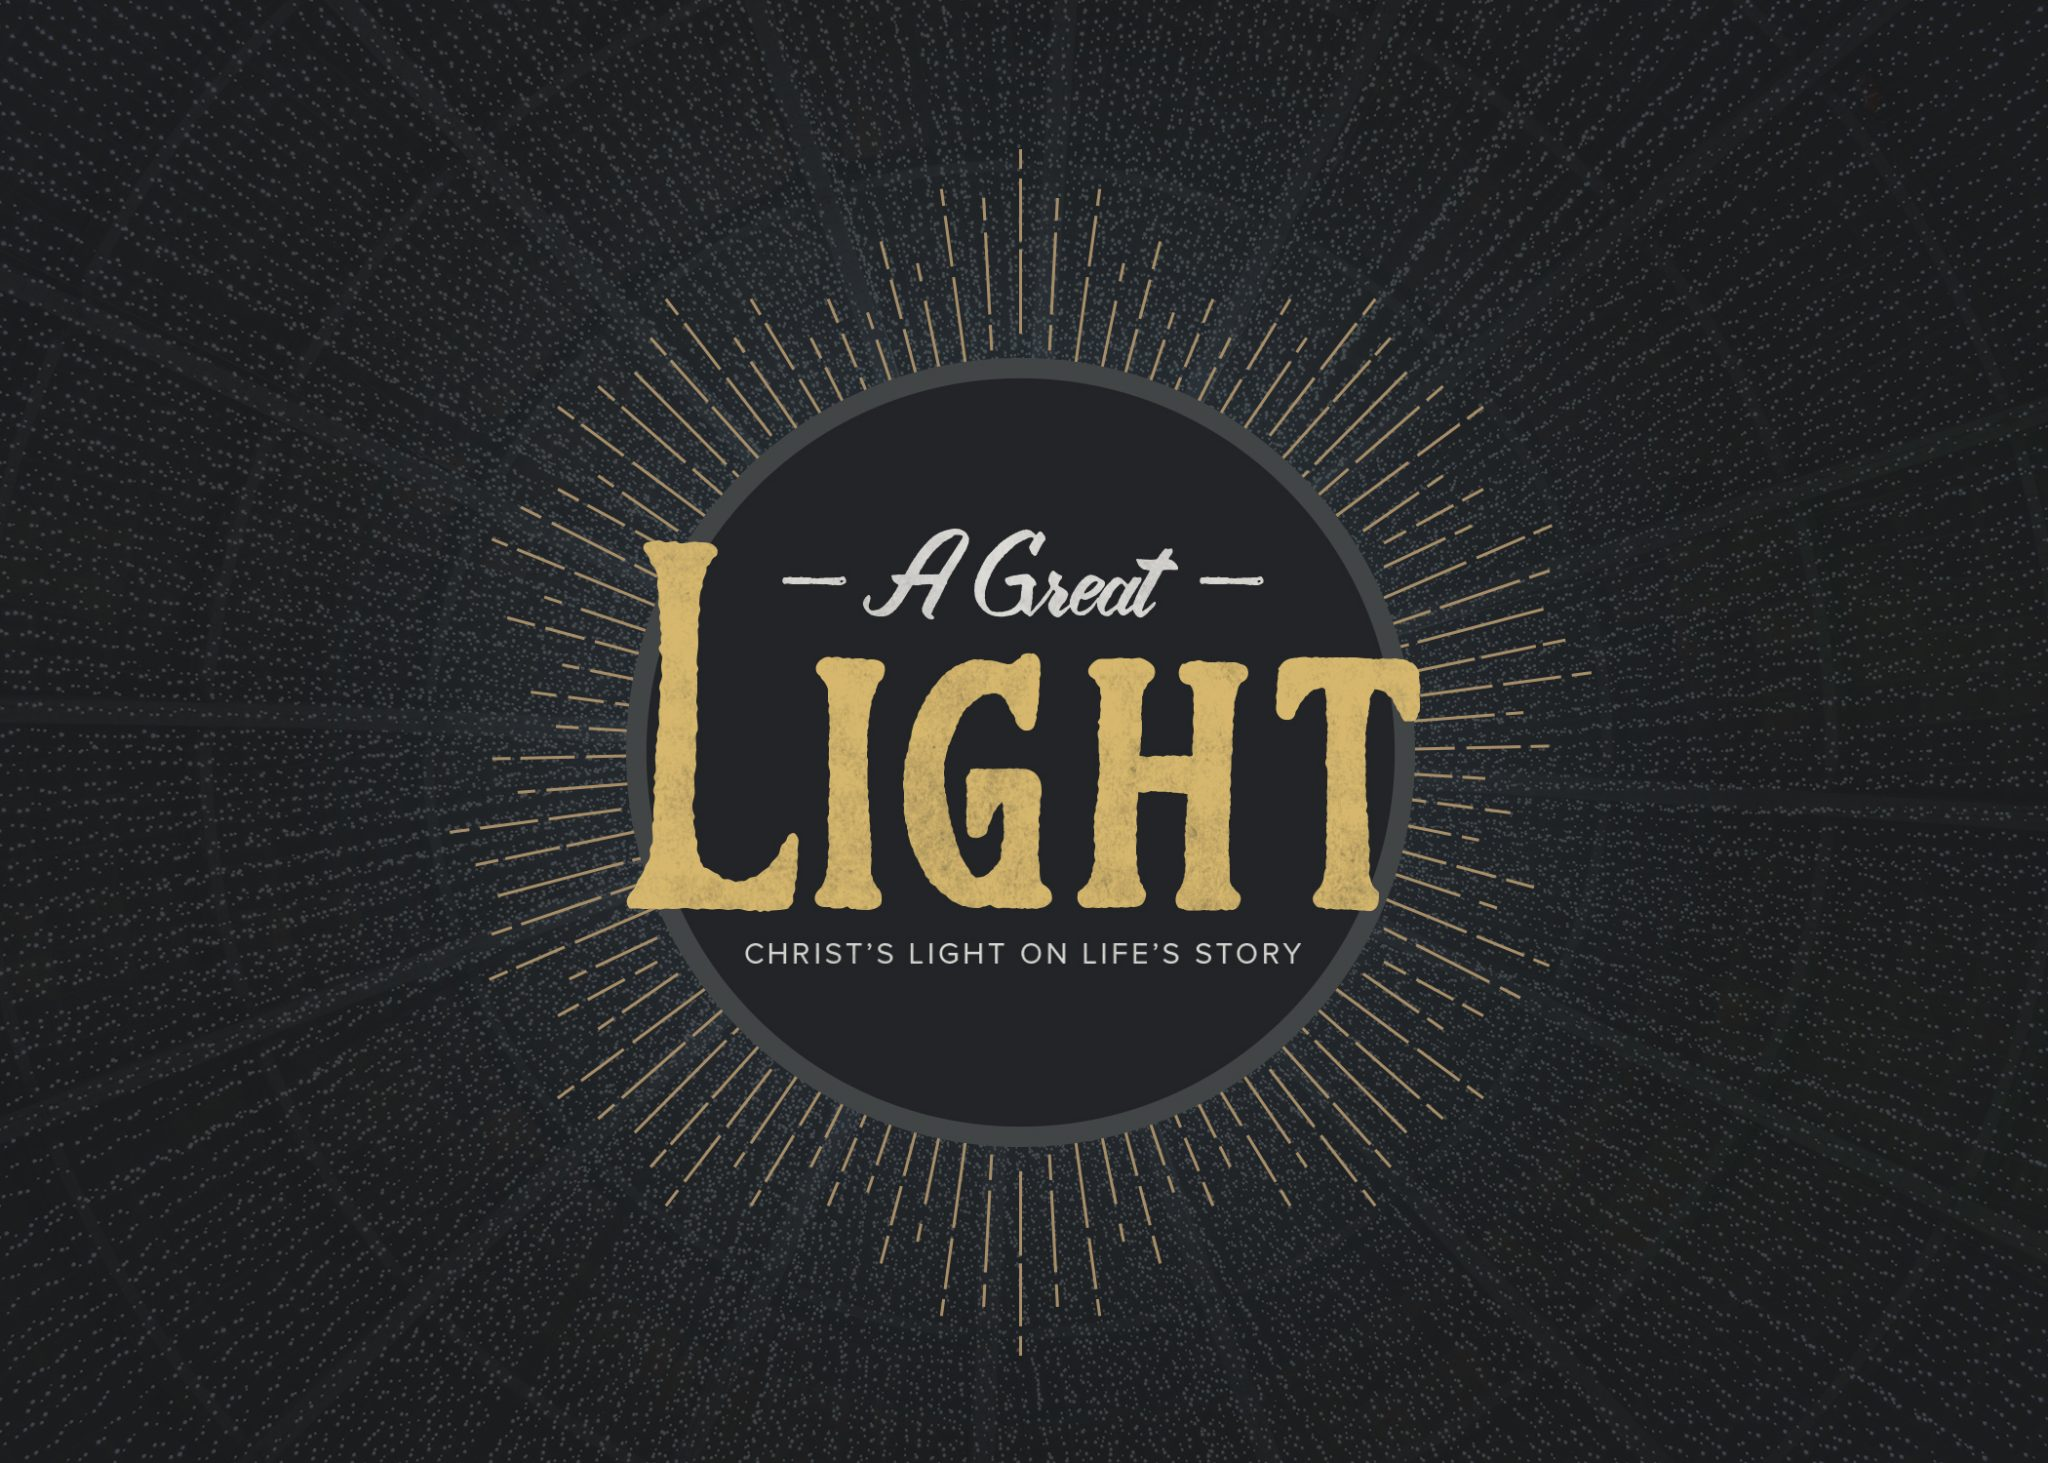 View all sermons in A Great Light